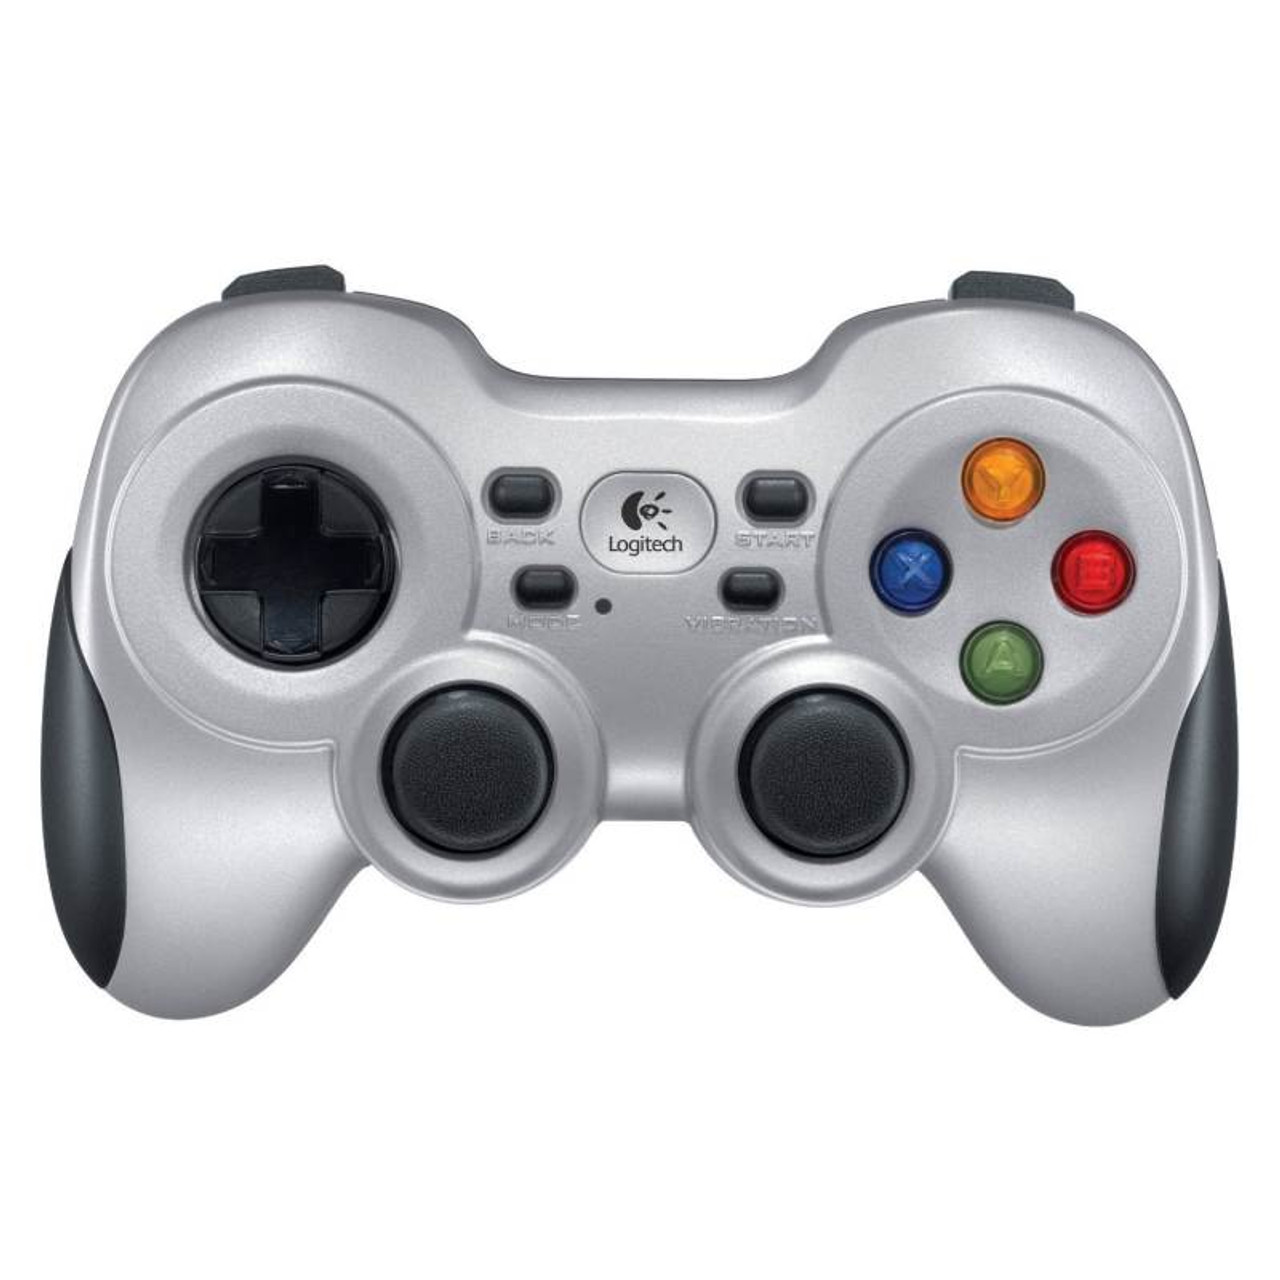 Image for Logitech F710 Wireless Gamepad CX Computer Superstore